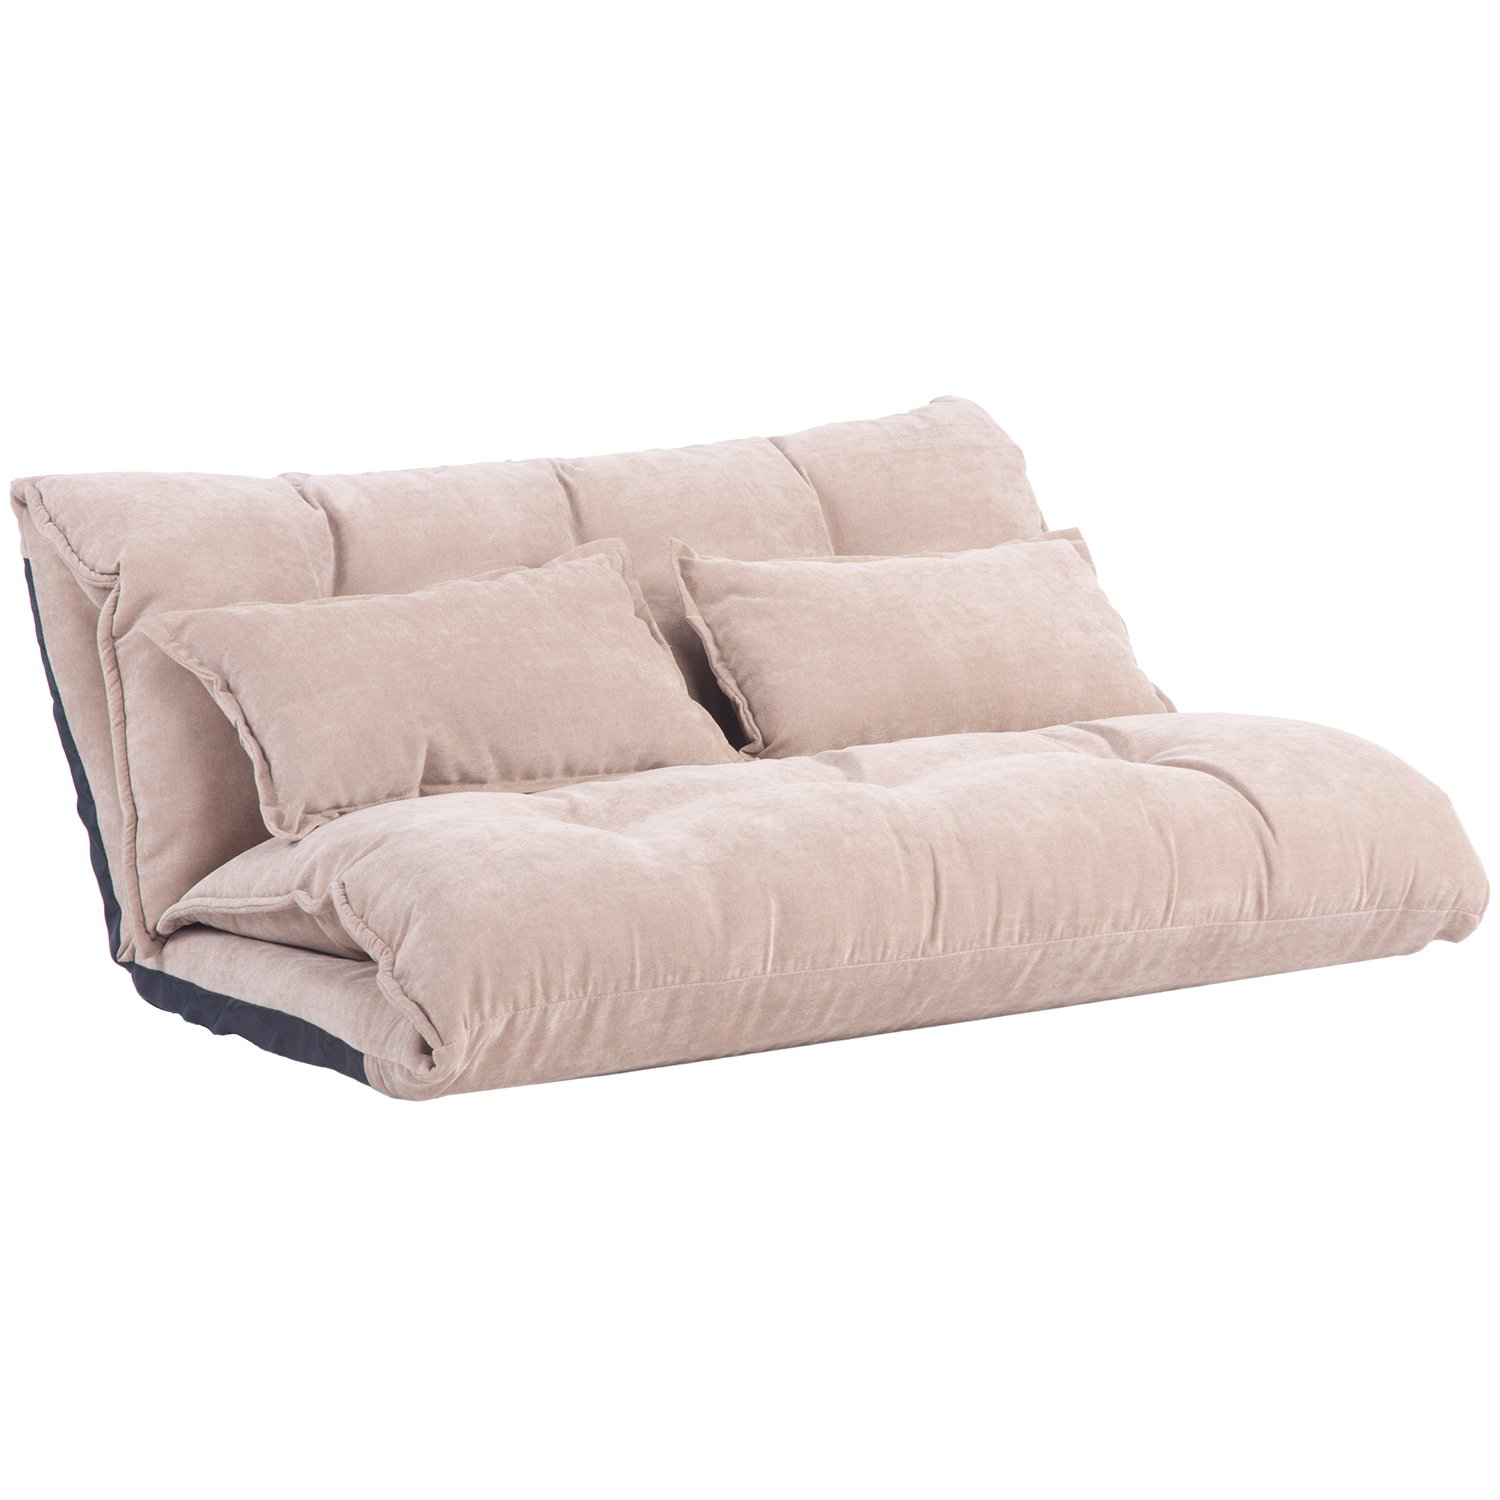 Merax Adjustable Floor Sofa Bed Lounge ...